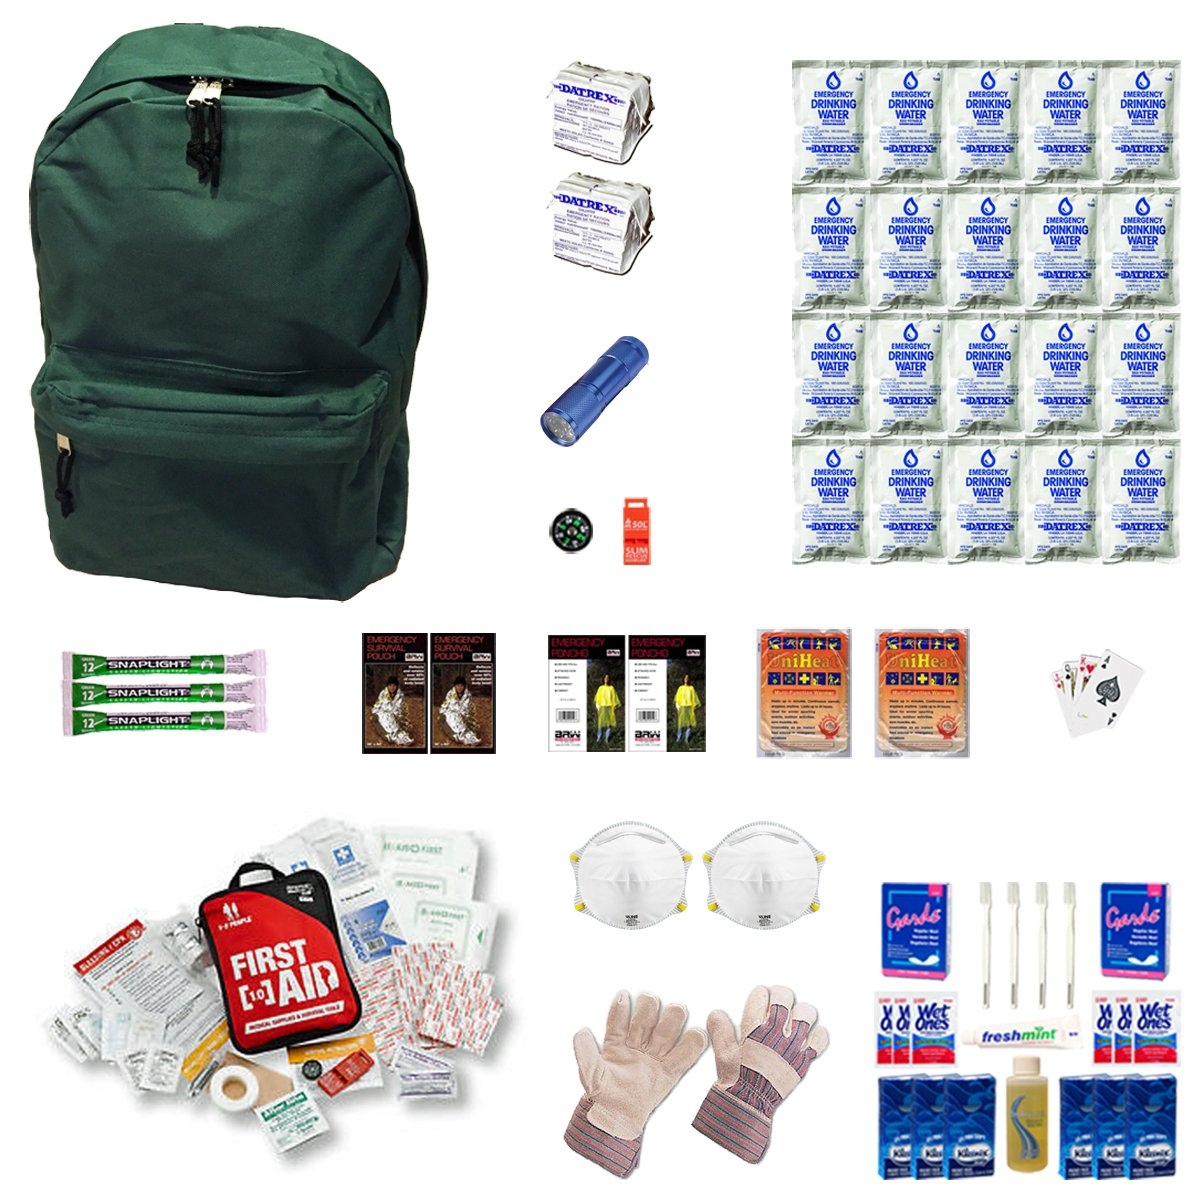 Emergency Survival Kit For Two People by Zippmo Survival Gear (Image #1)